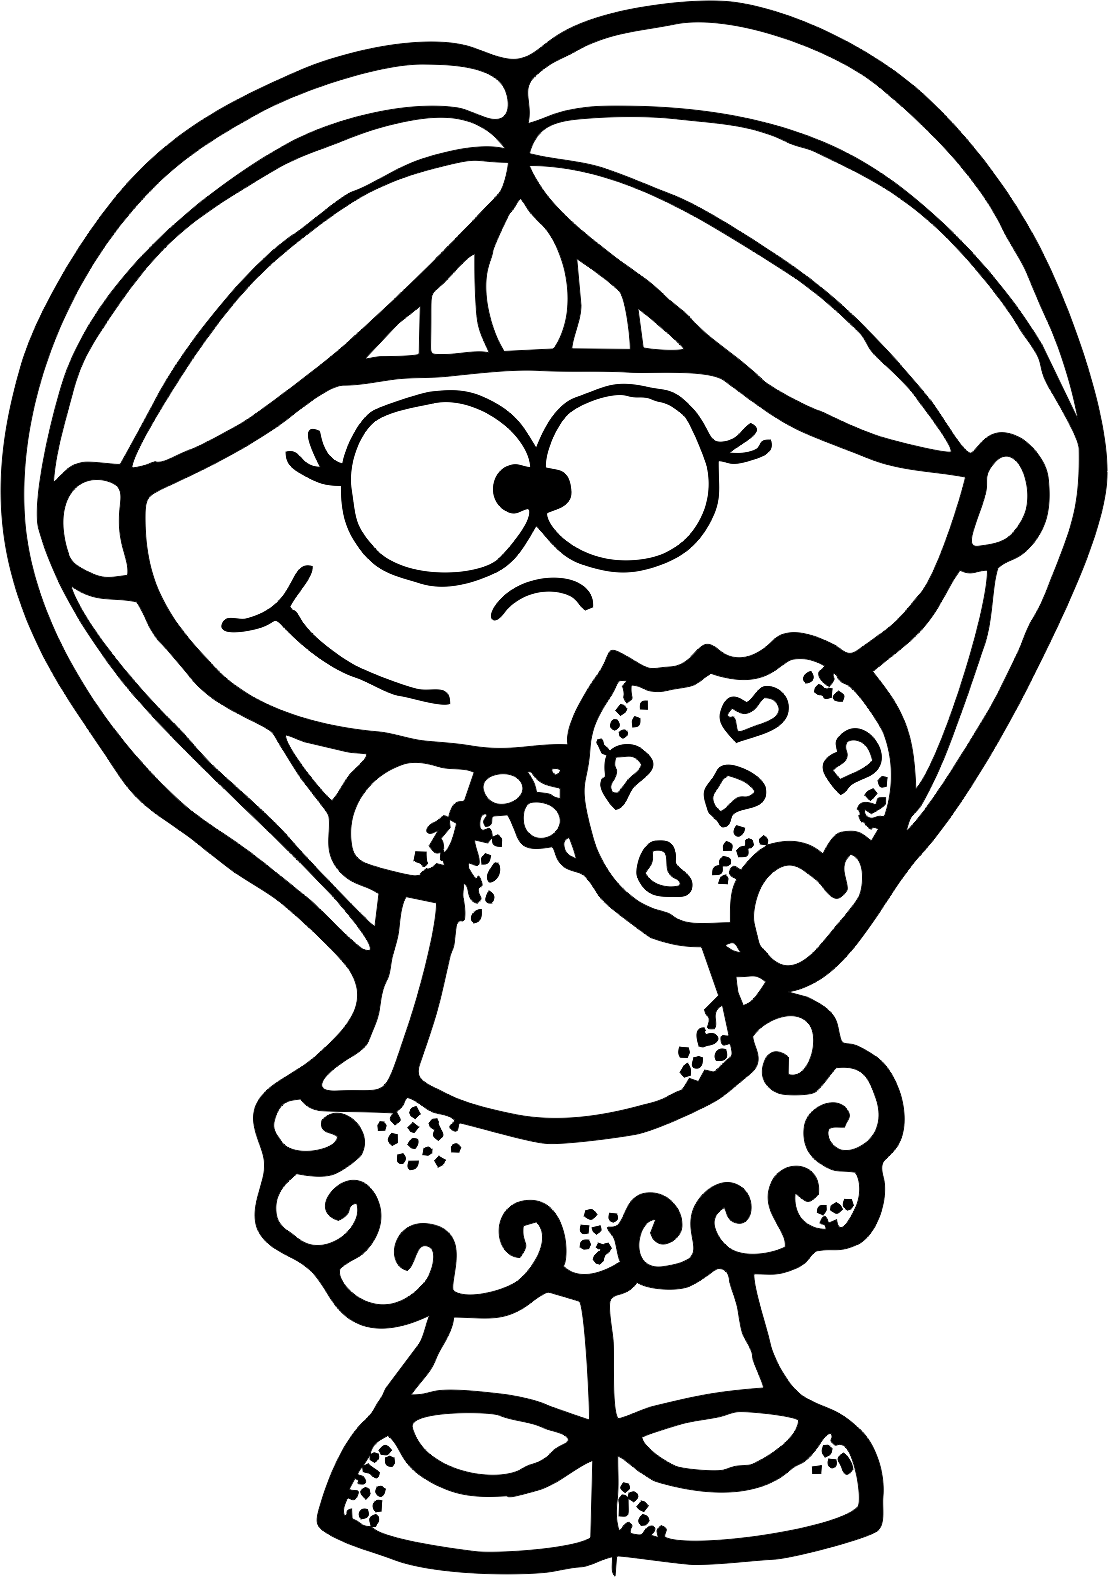 Ladder clipart colouring. Cookie girl bw png